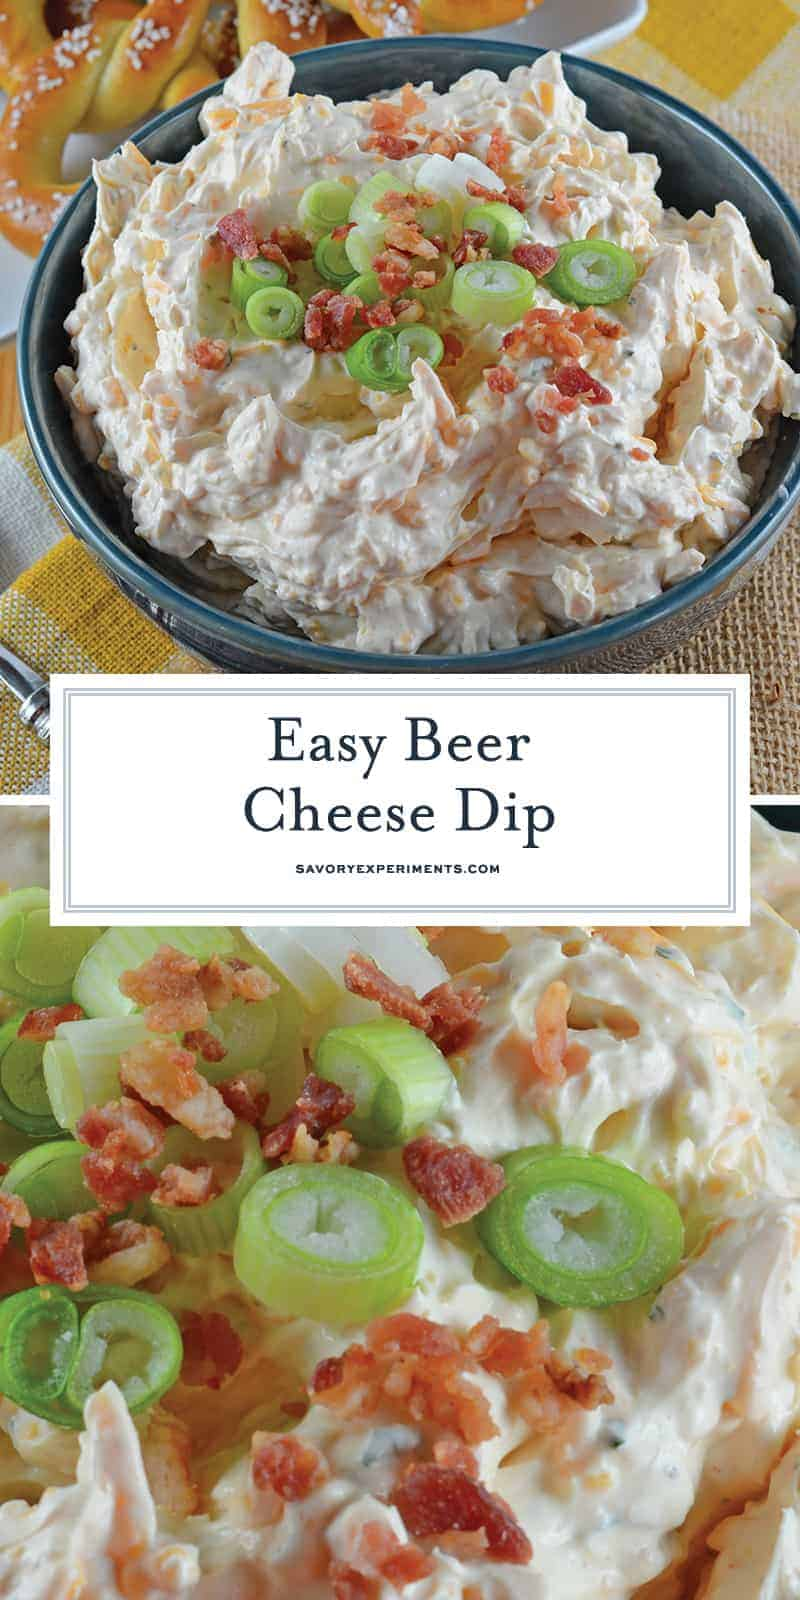 Beer Cheese Dip is an easy, spreadable, zesty pub cheese great for serving with soft pretzels, crackers, carrots, celery sticks or chips! #beercheesedip #beercheesepretzeldip www.savoryexperiments.com